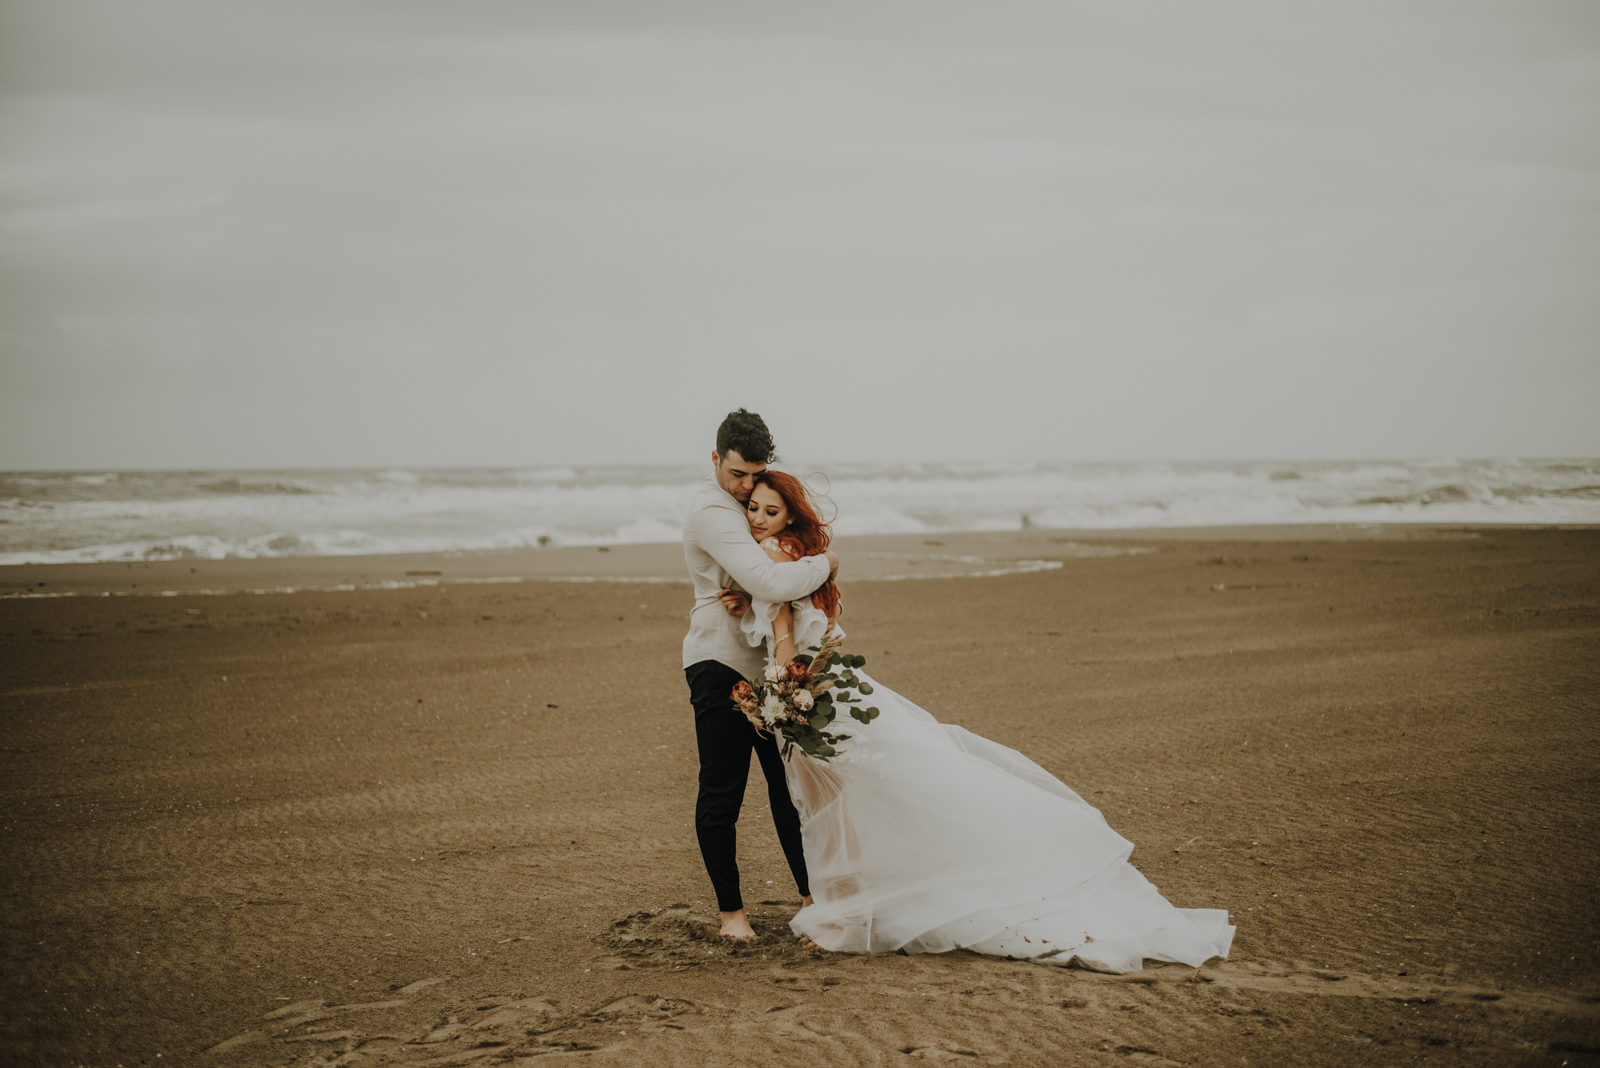 A Stormy Summer Beach Elopement (Styled Shoot) by Lovebirds Photo